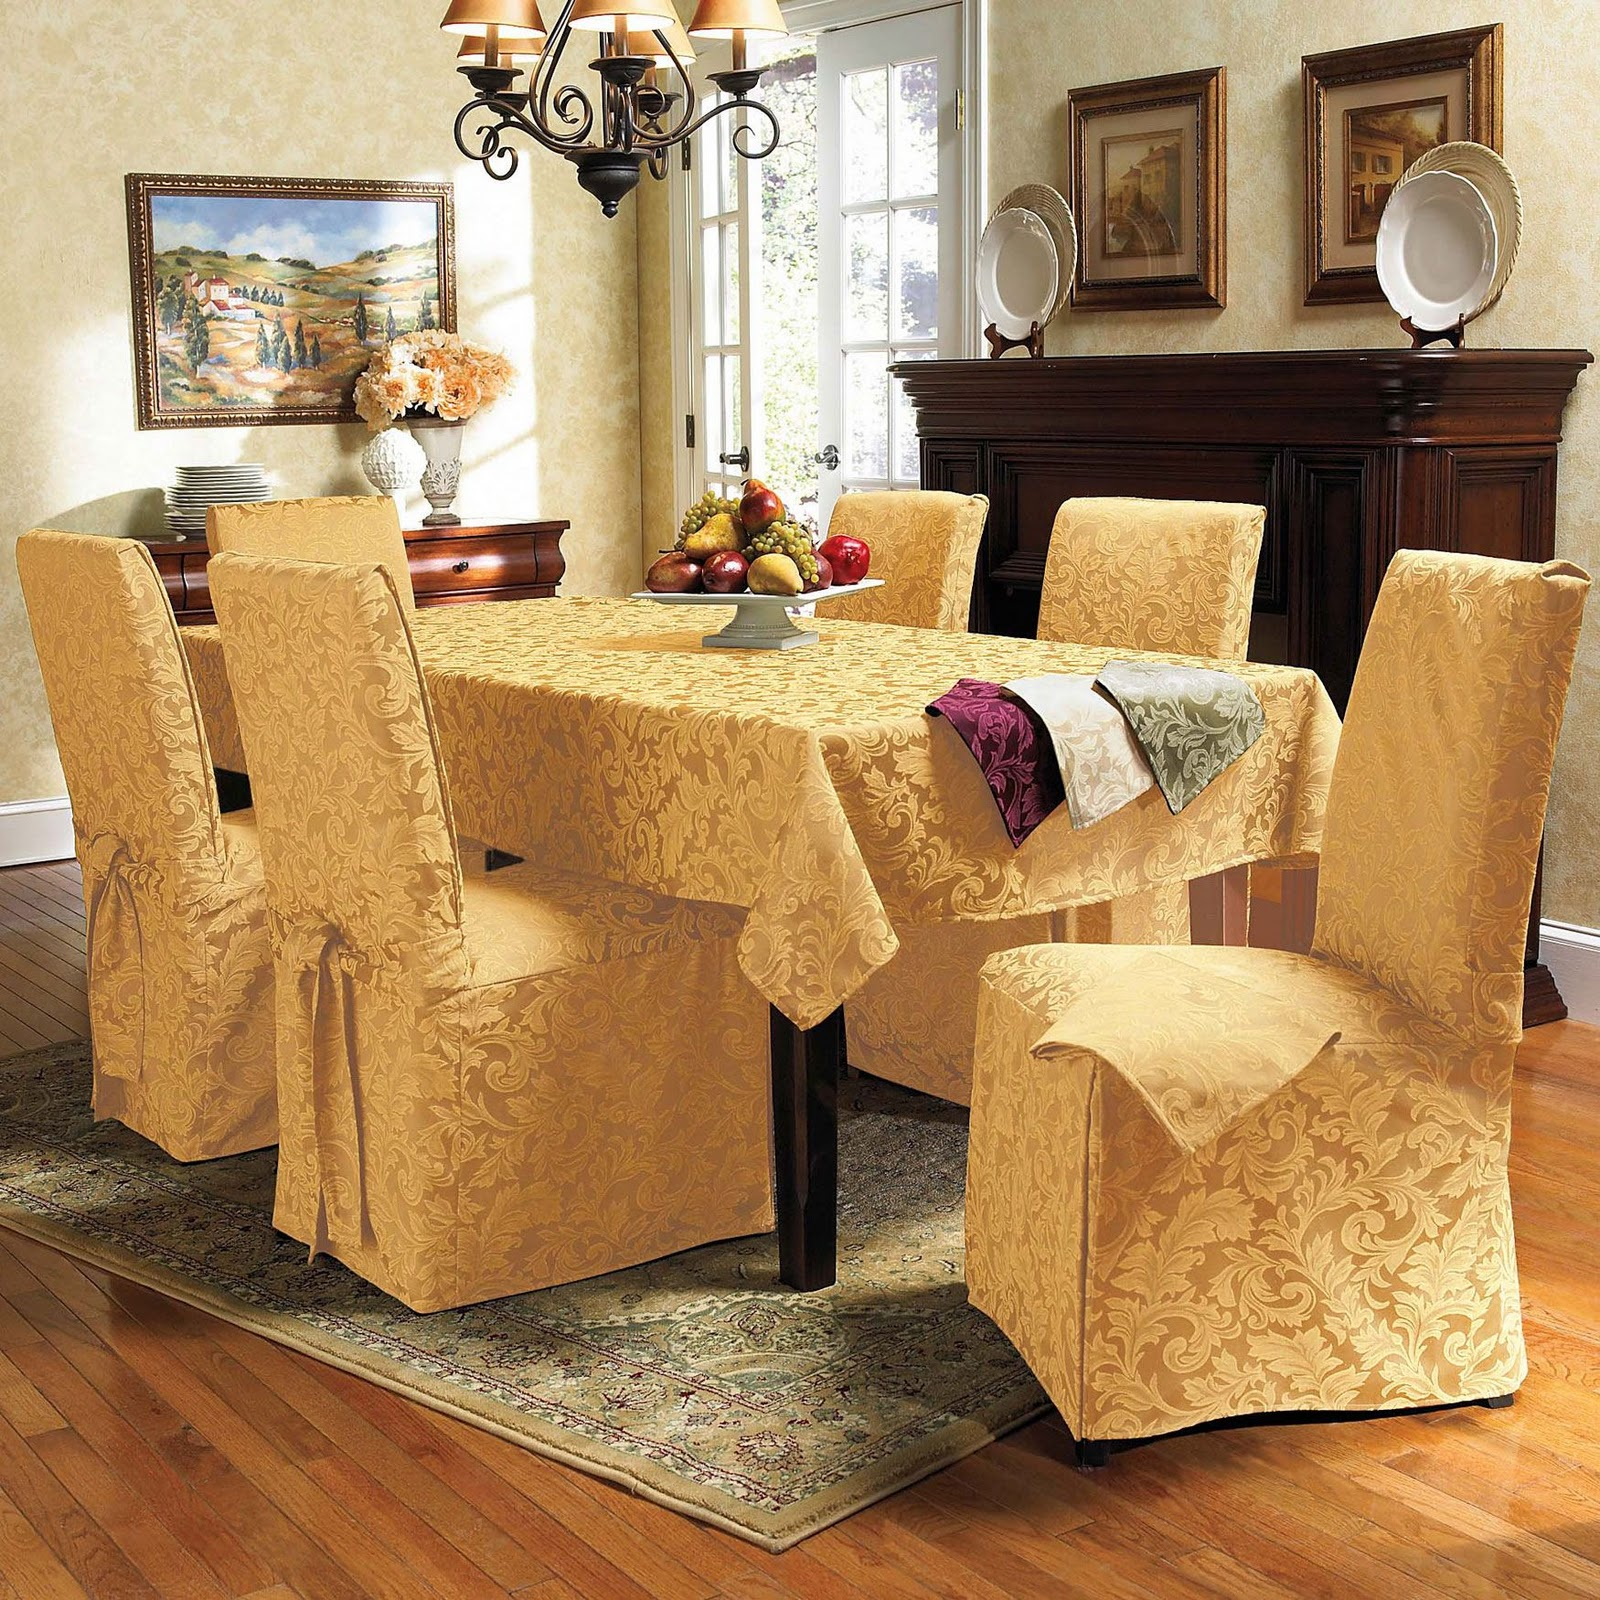 Dining room table chair covers photo 1 design your home for Dining room chair covers